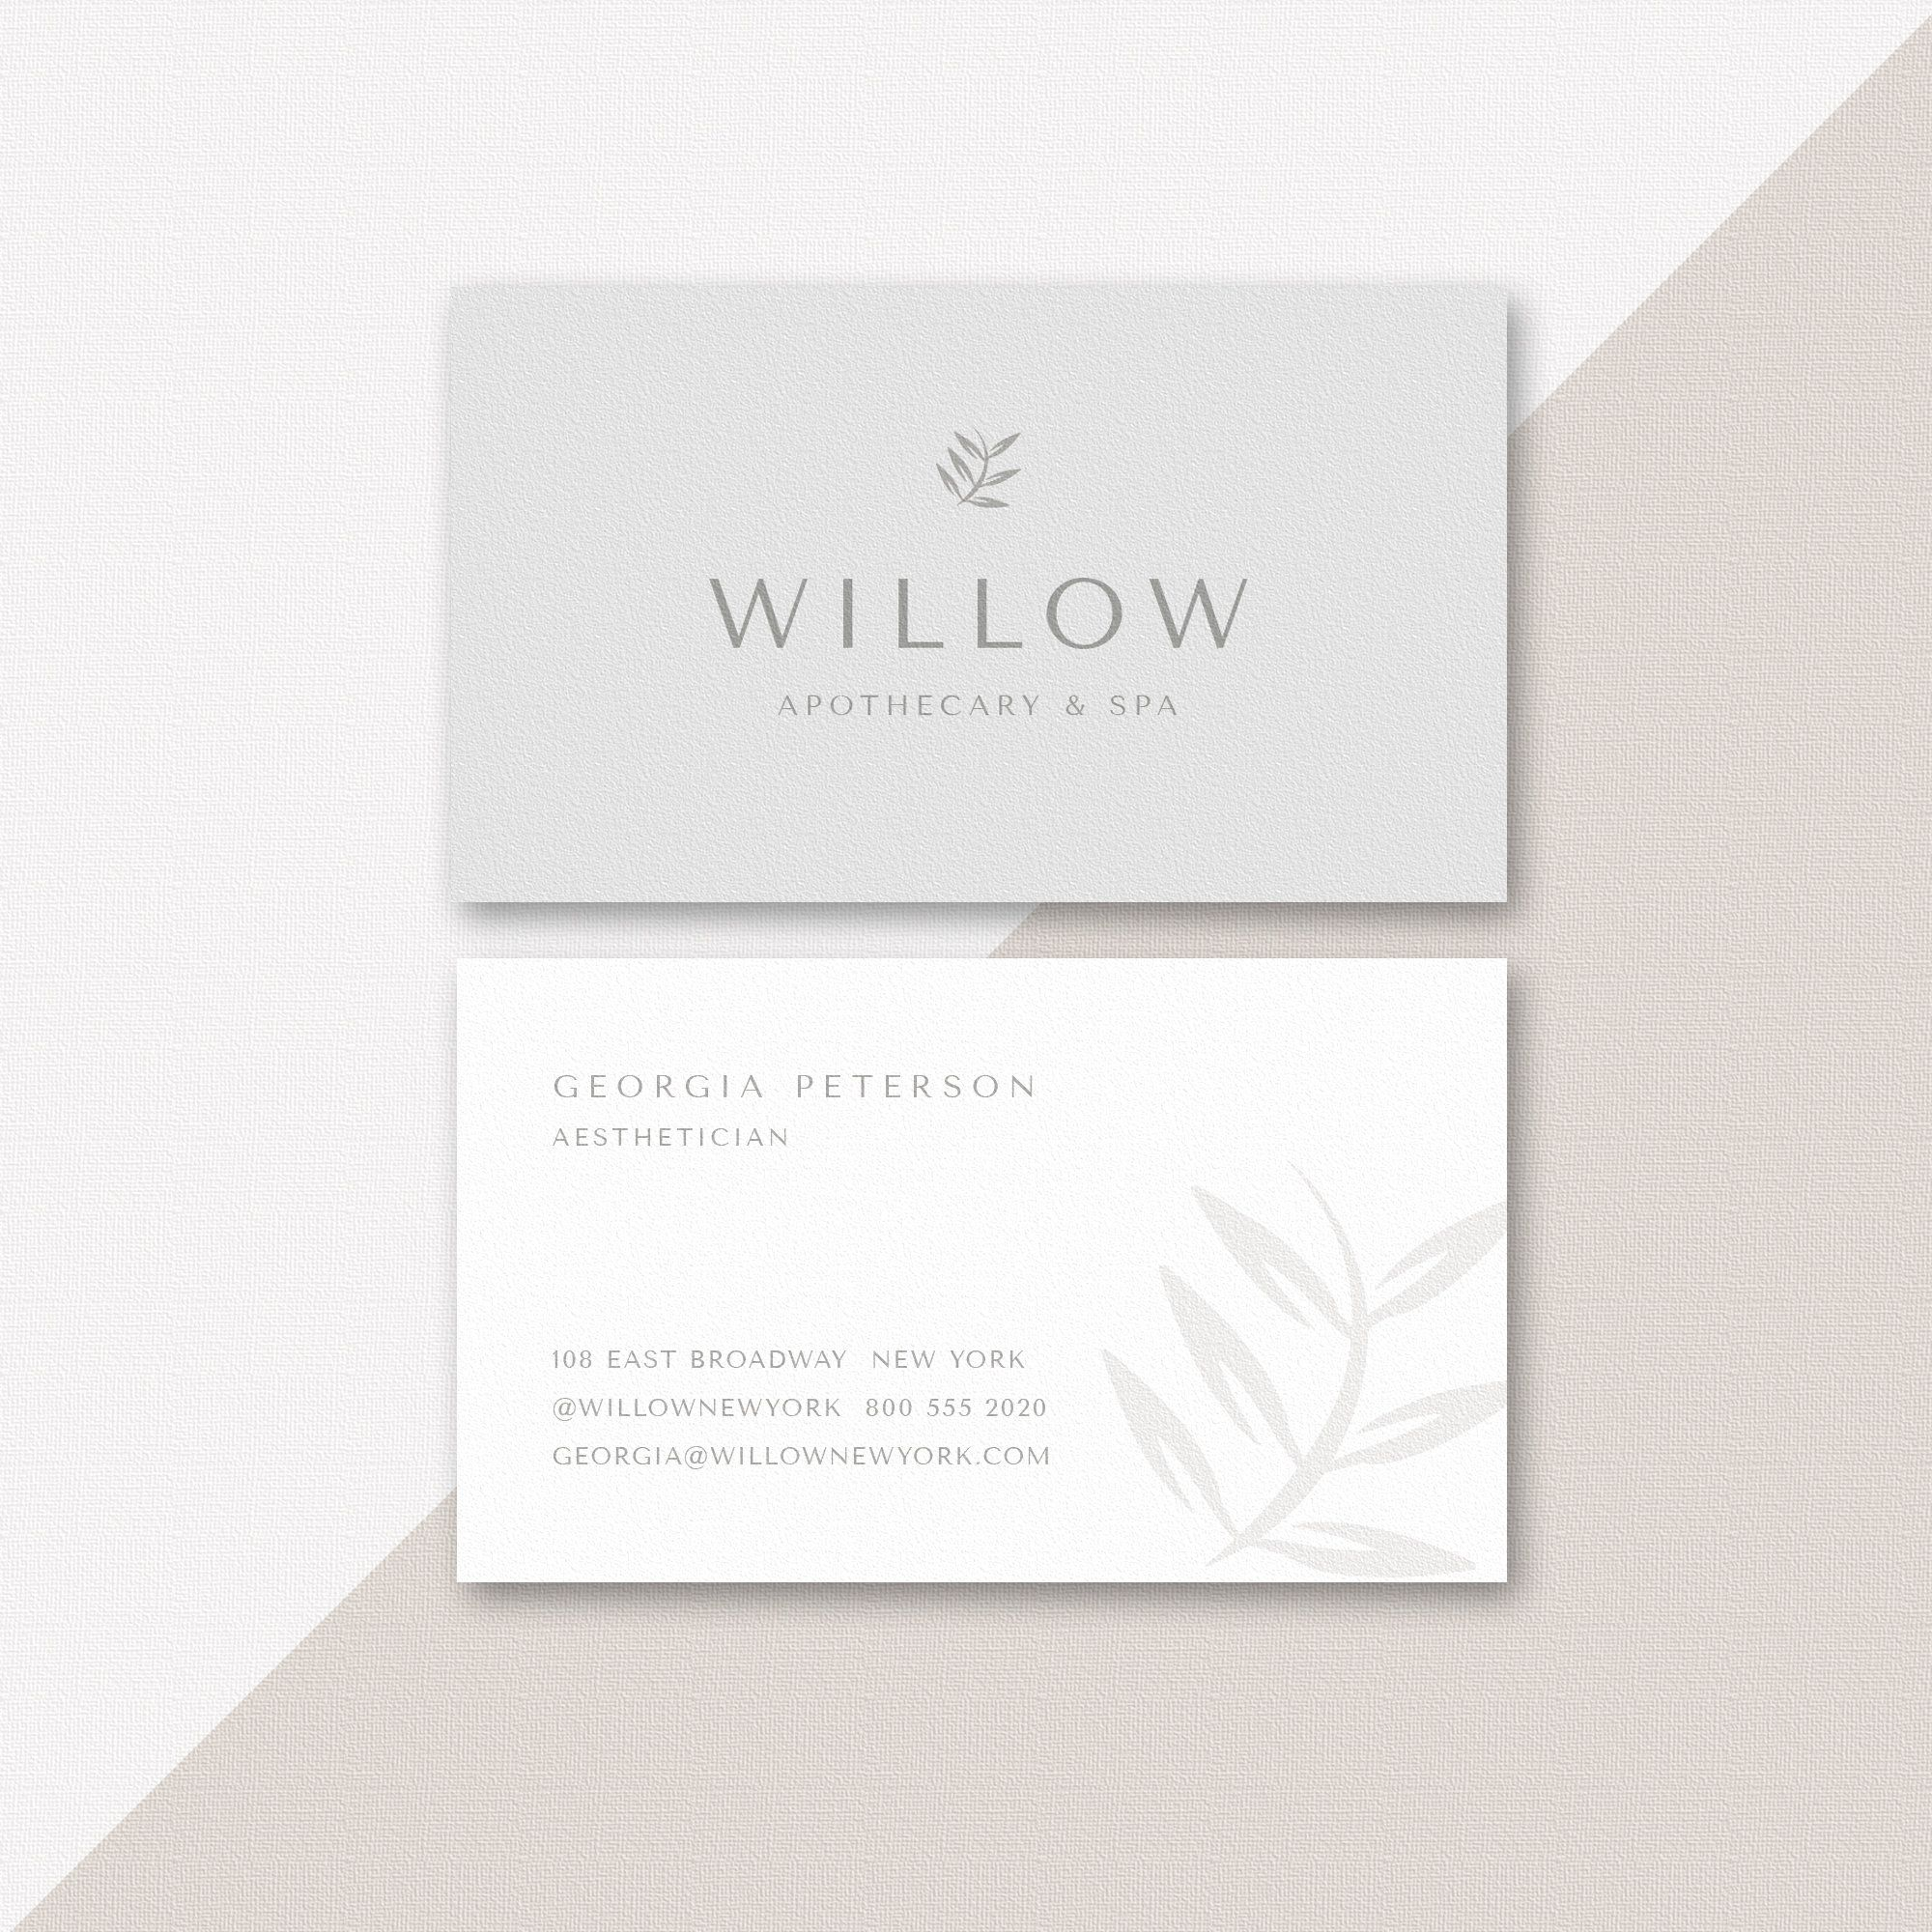 Boutique Business Card Template Instant Download Minimalist Etsy In 2020 Business Card Photoshop Boutique Business Cards Marketing Business Card